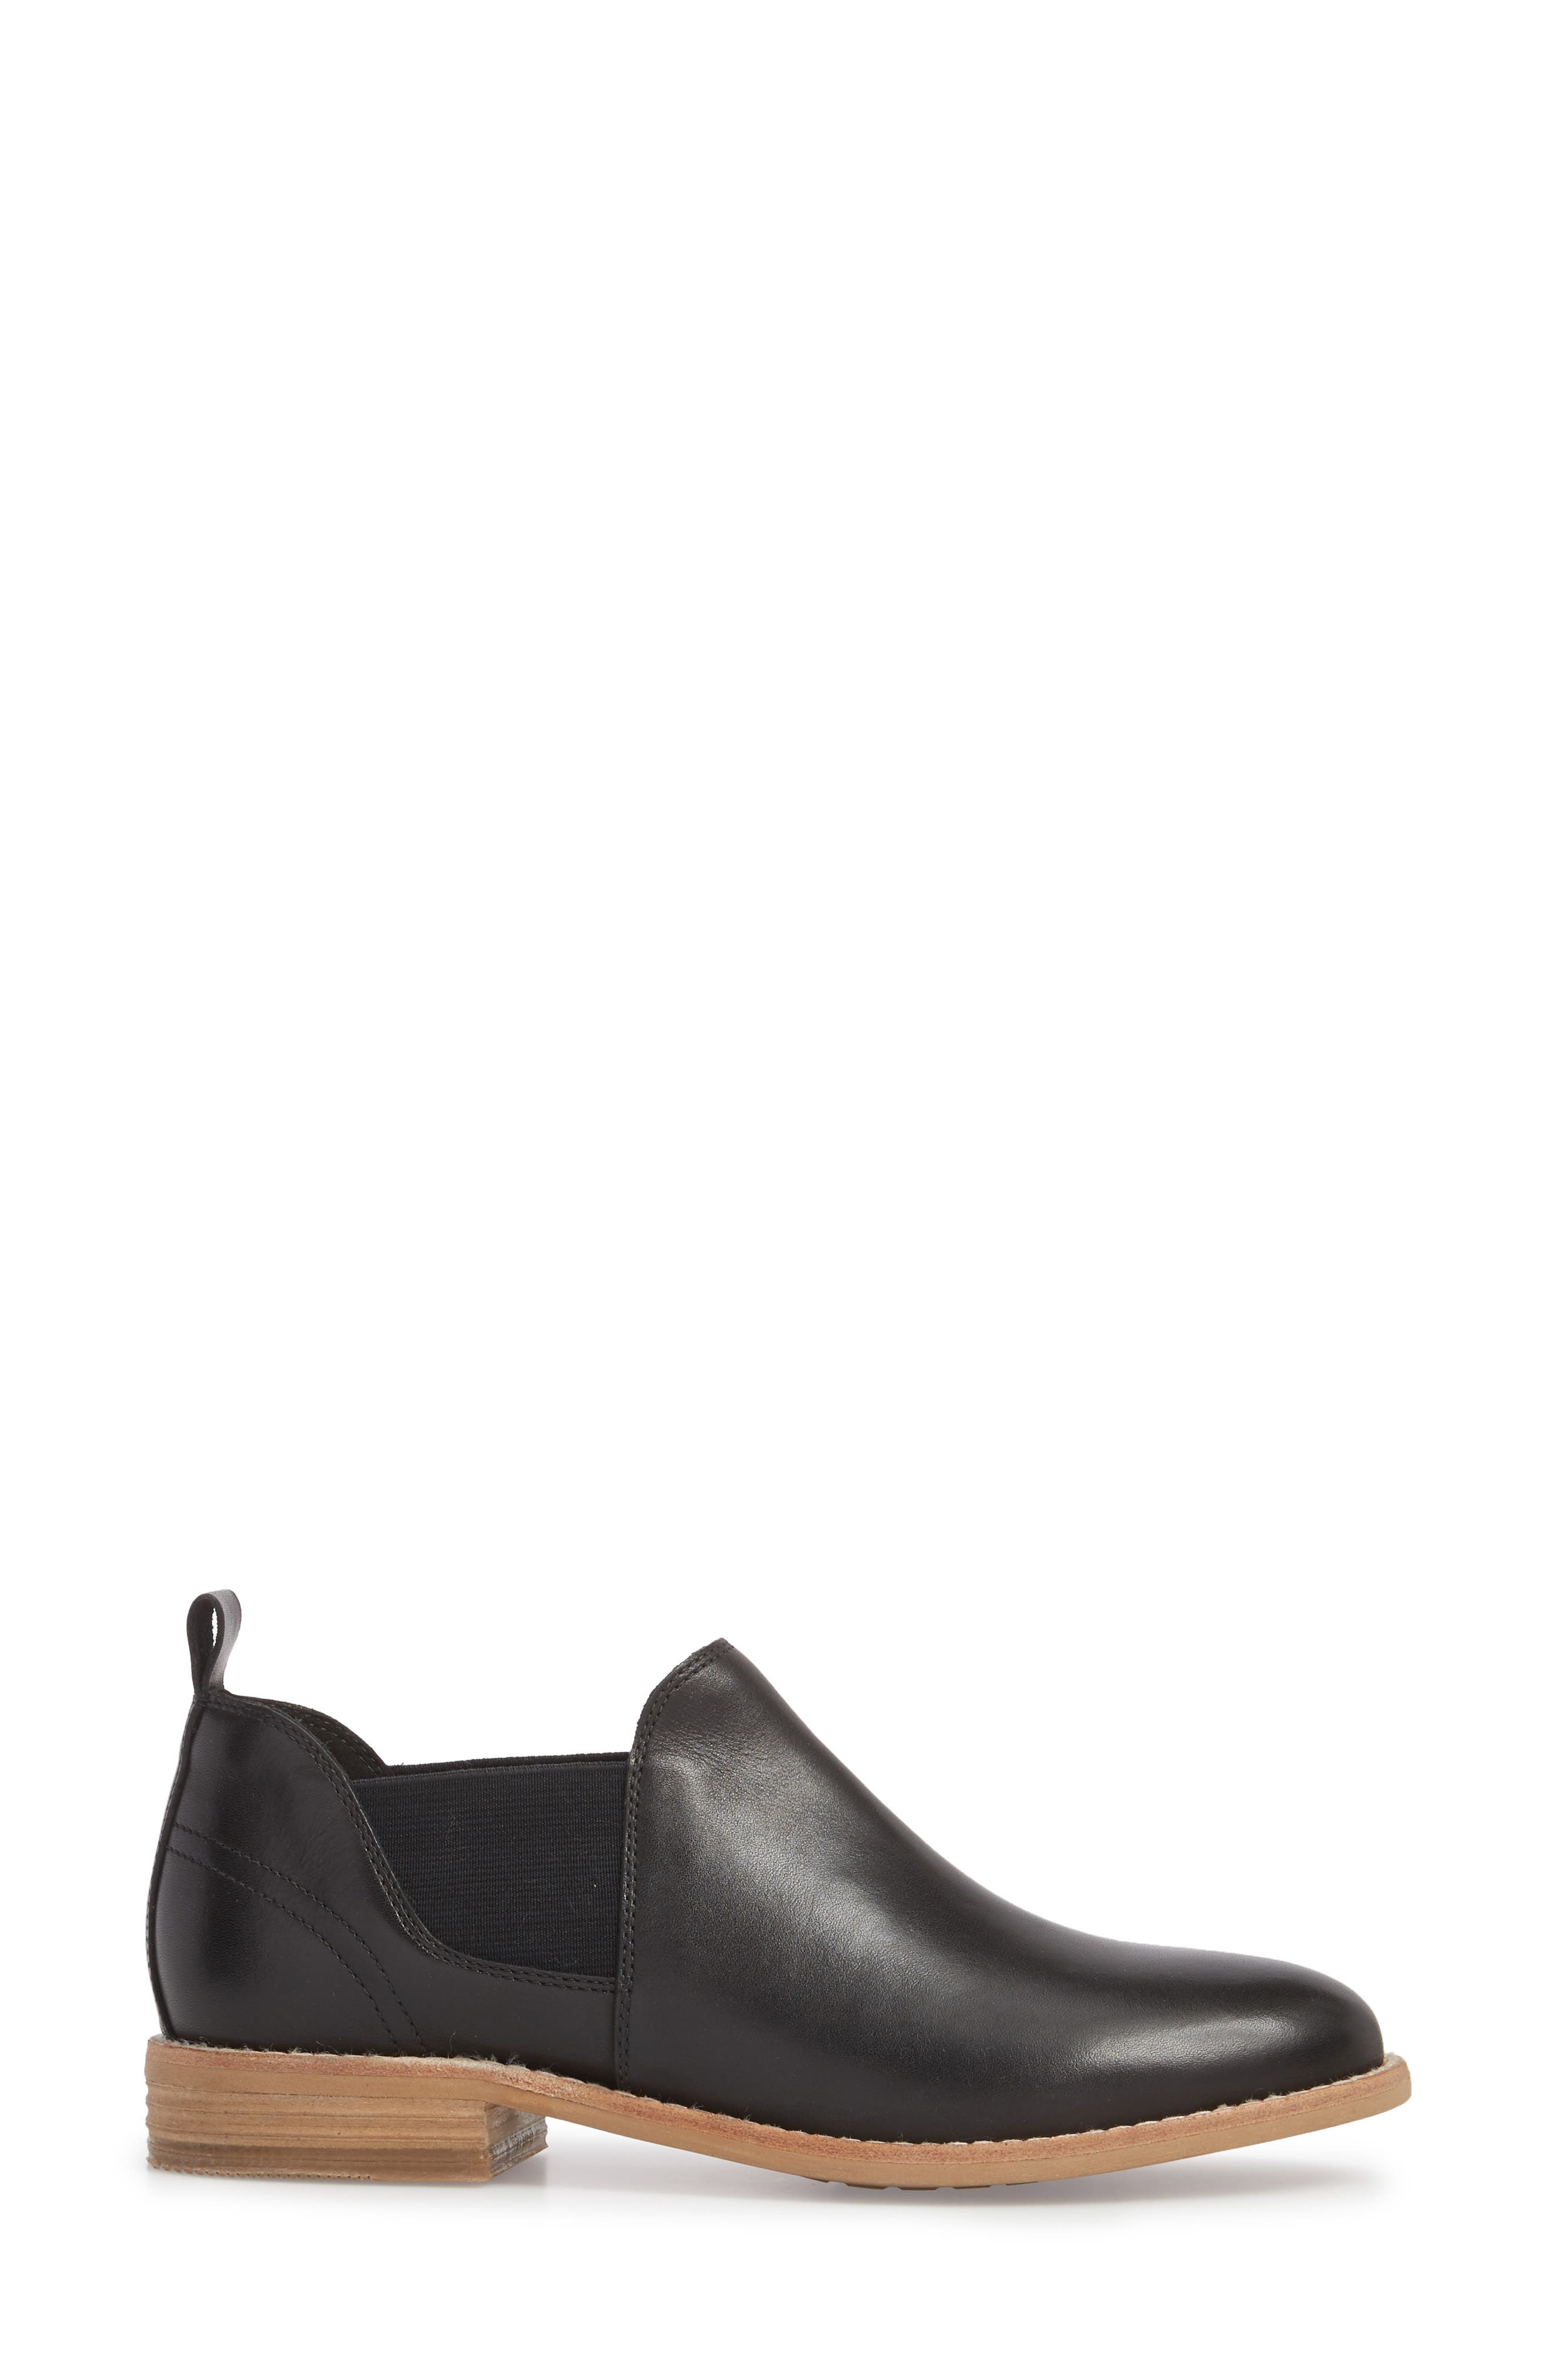 Edenvale Page Bootie,                             Alternate thumbnail 3, color,                             BLACK LEATHER